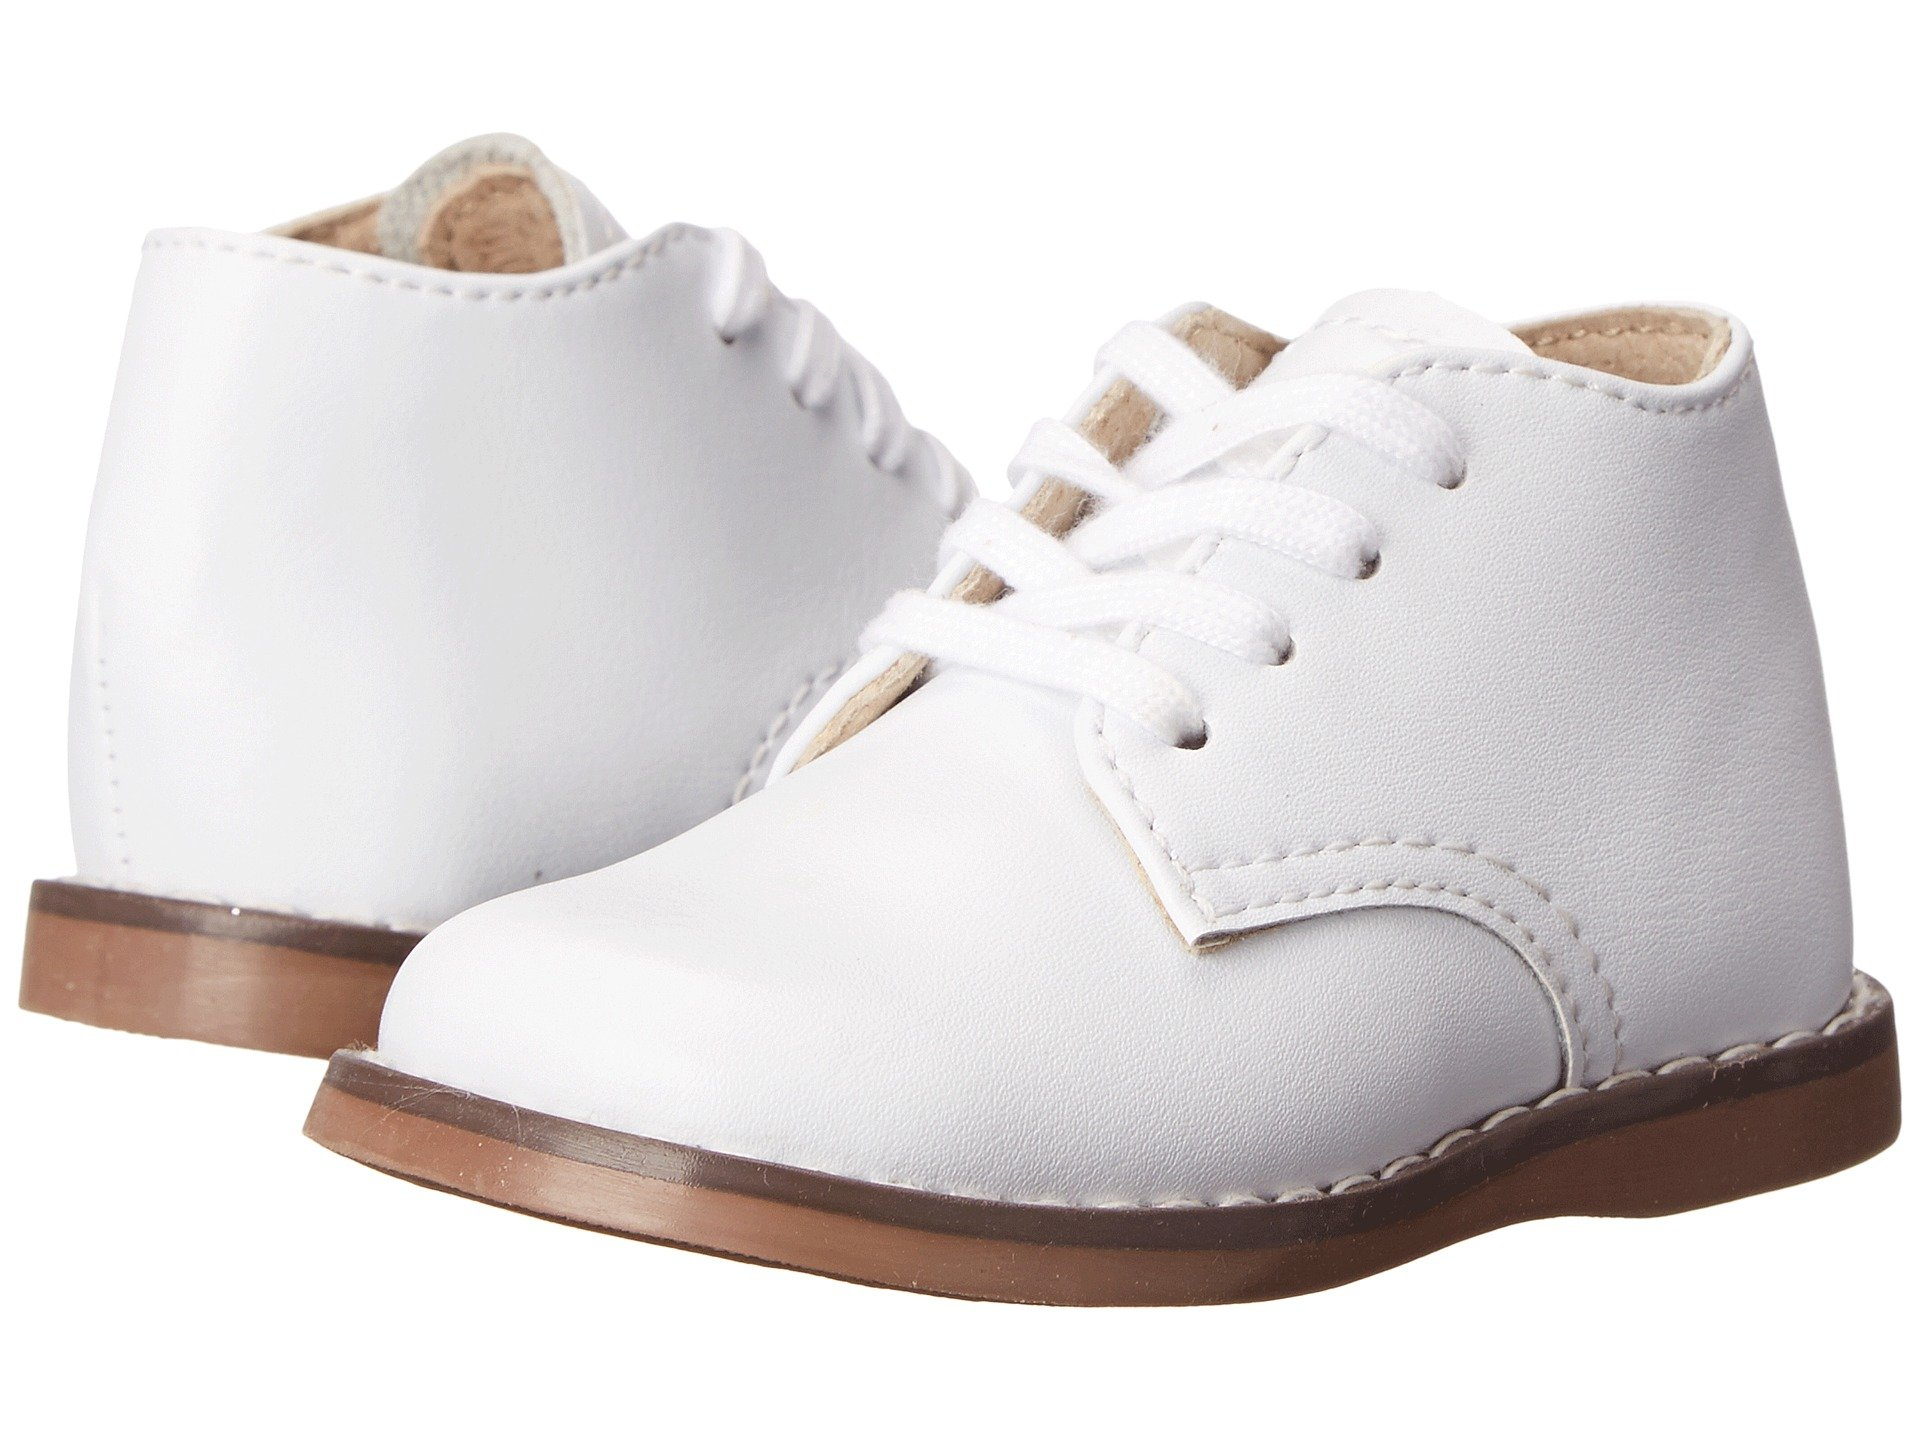 Shoes, First Walker, Girls | Shipped Free at Zappos